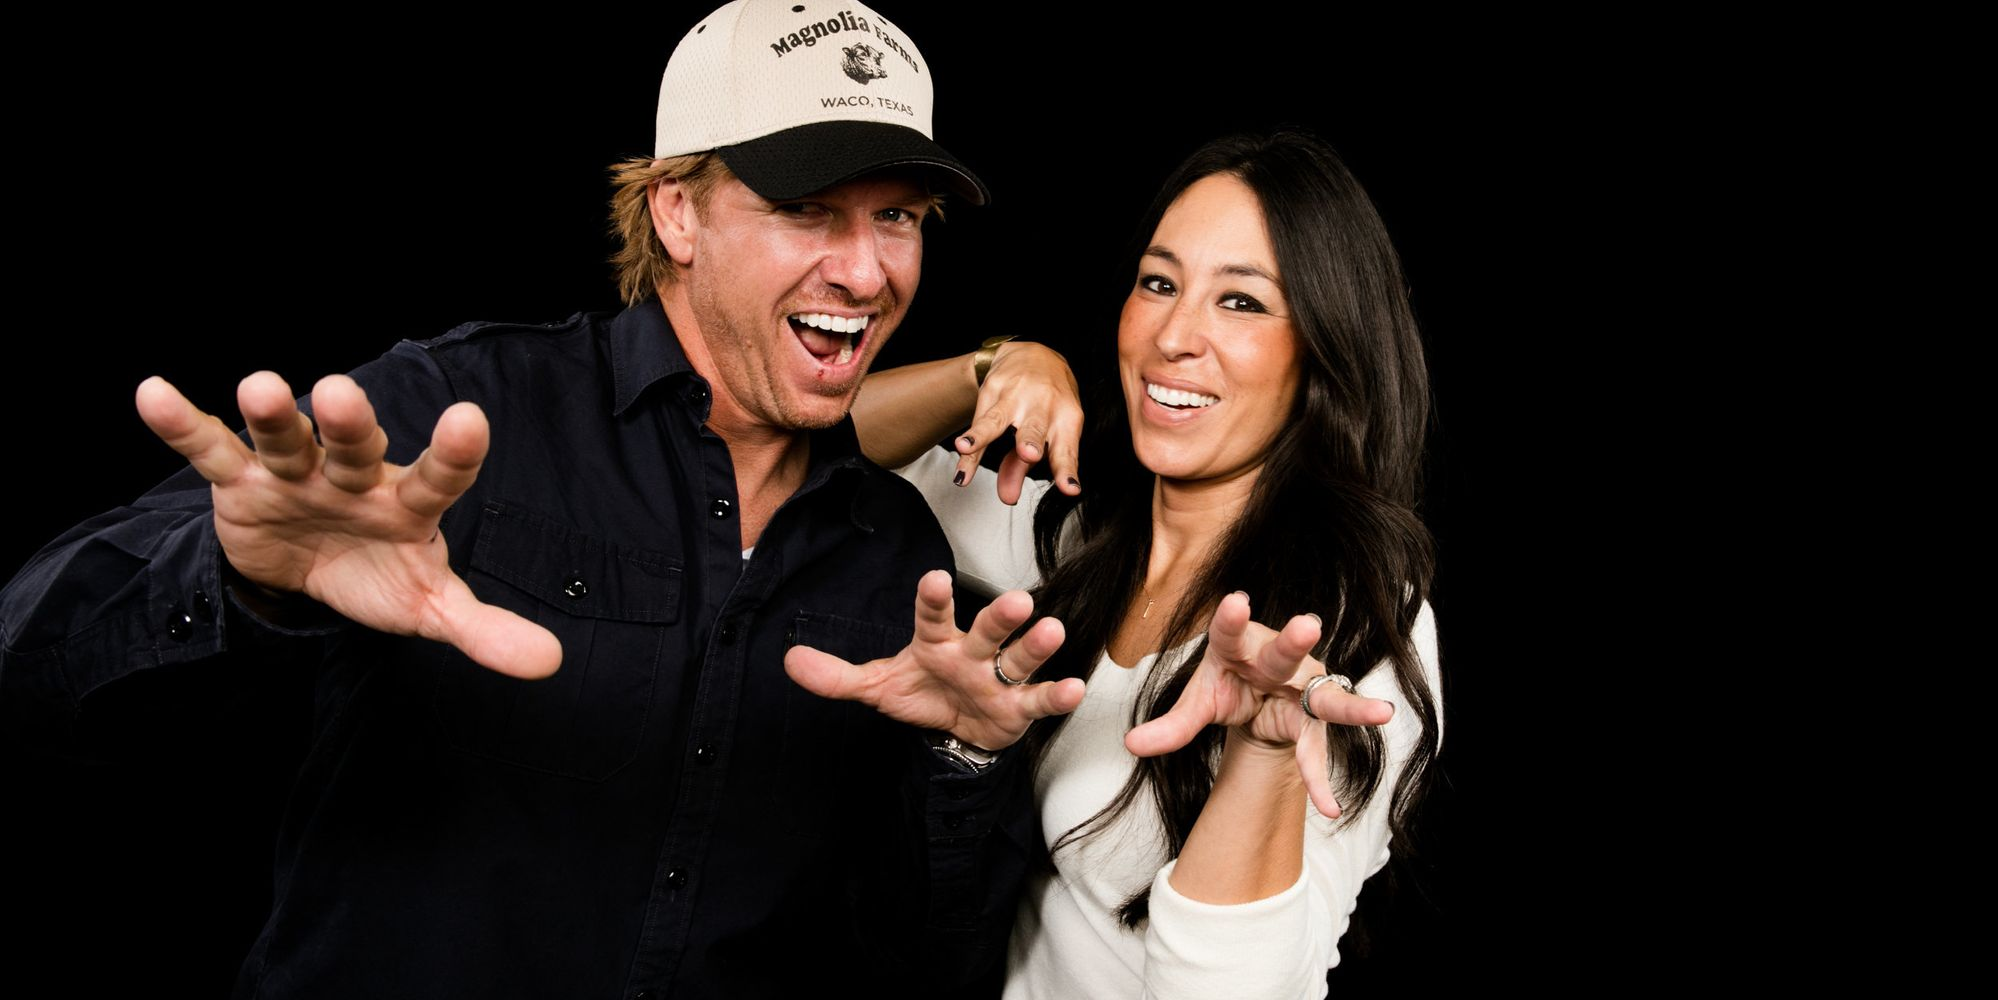 Fixer upper stars chip and joanna gaines are thinking about baby no